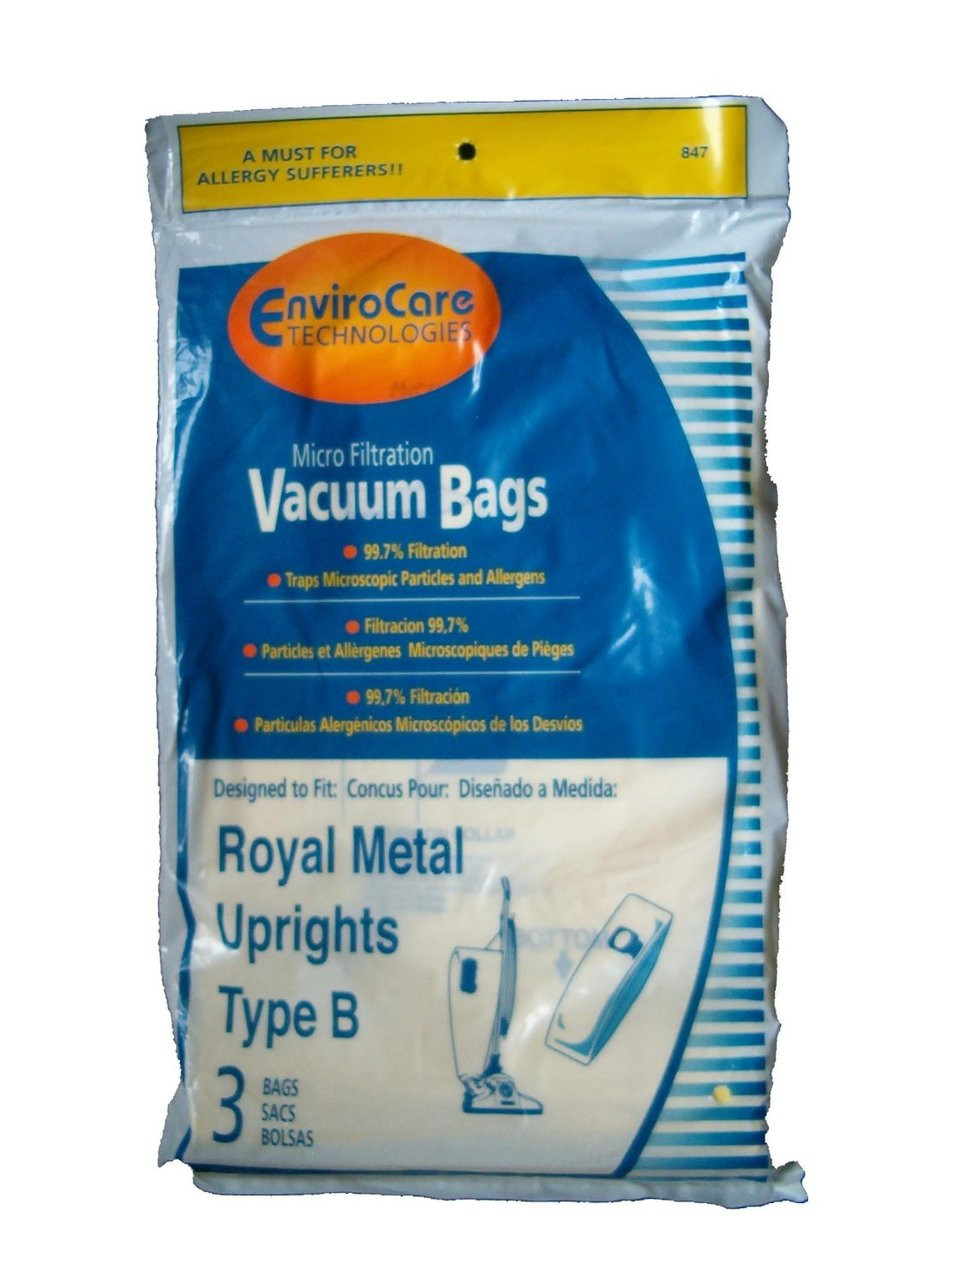 3 Royal Upright Type B Vacuum Cleaner Allergy Bags Top